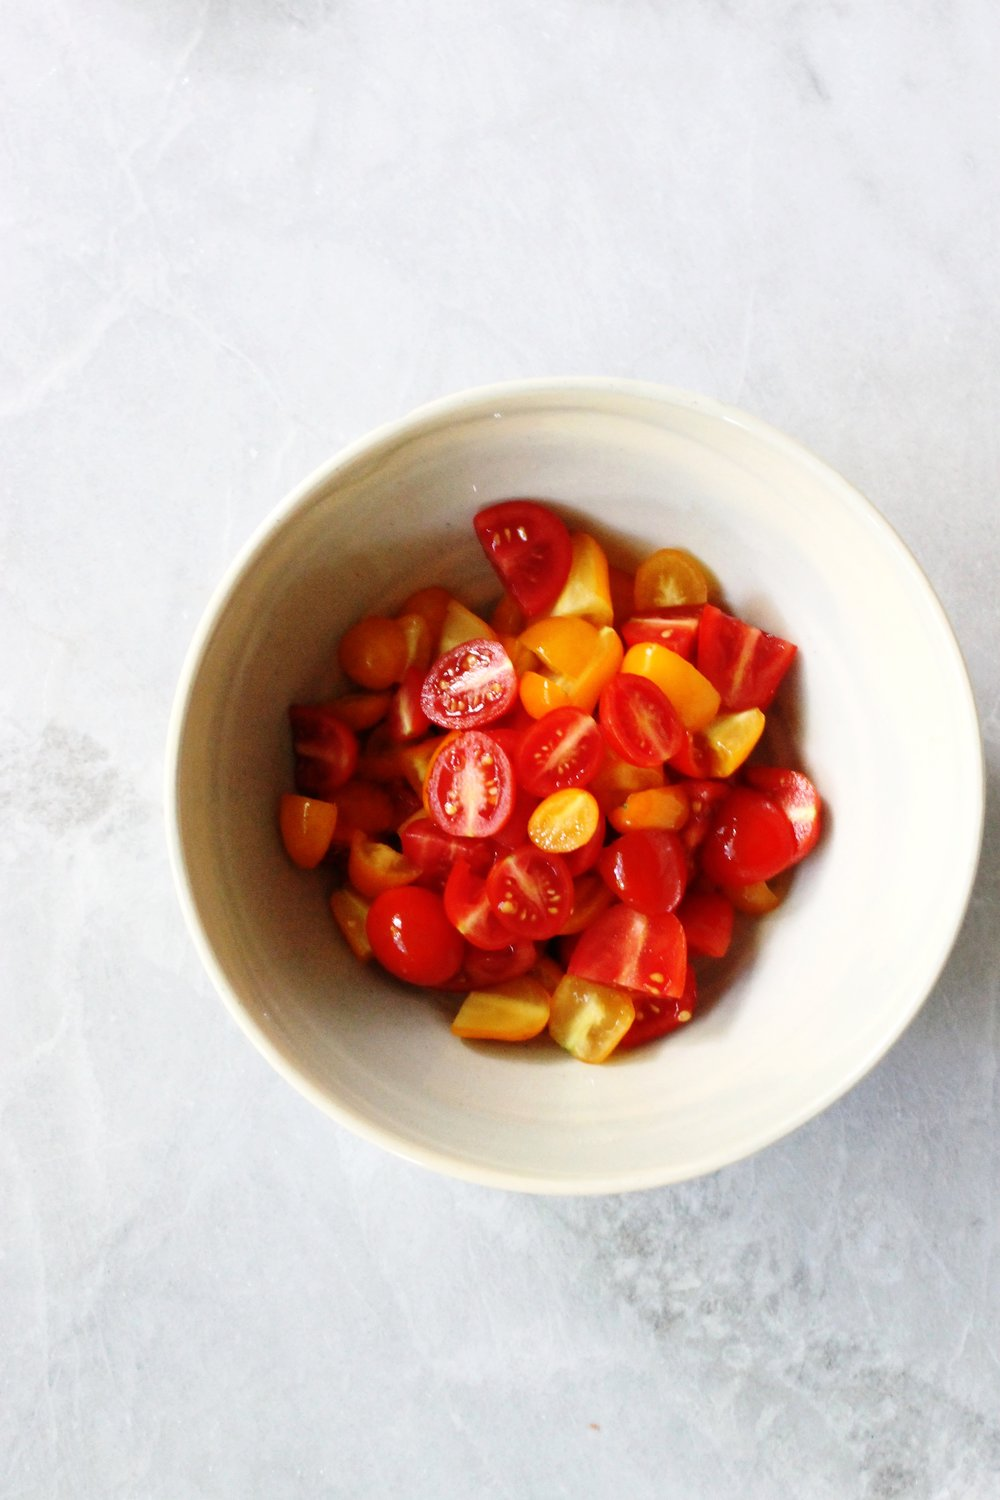 Heirloom tomato salad with burrata and pickled shallots | Beloved Kitchen